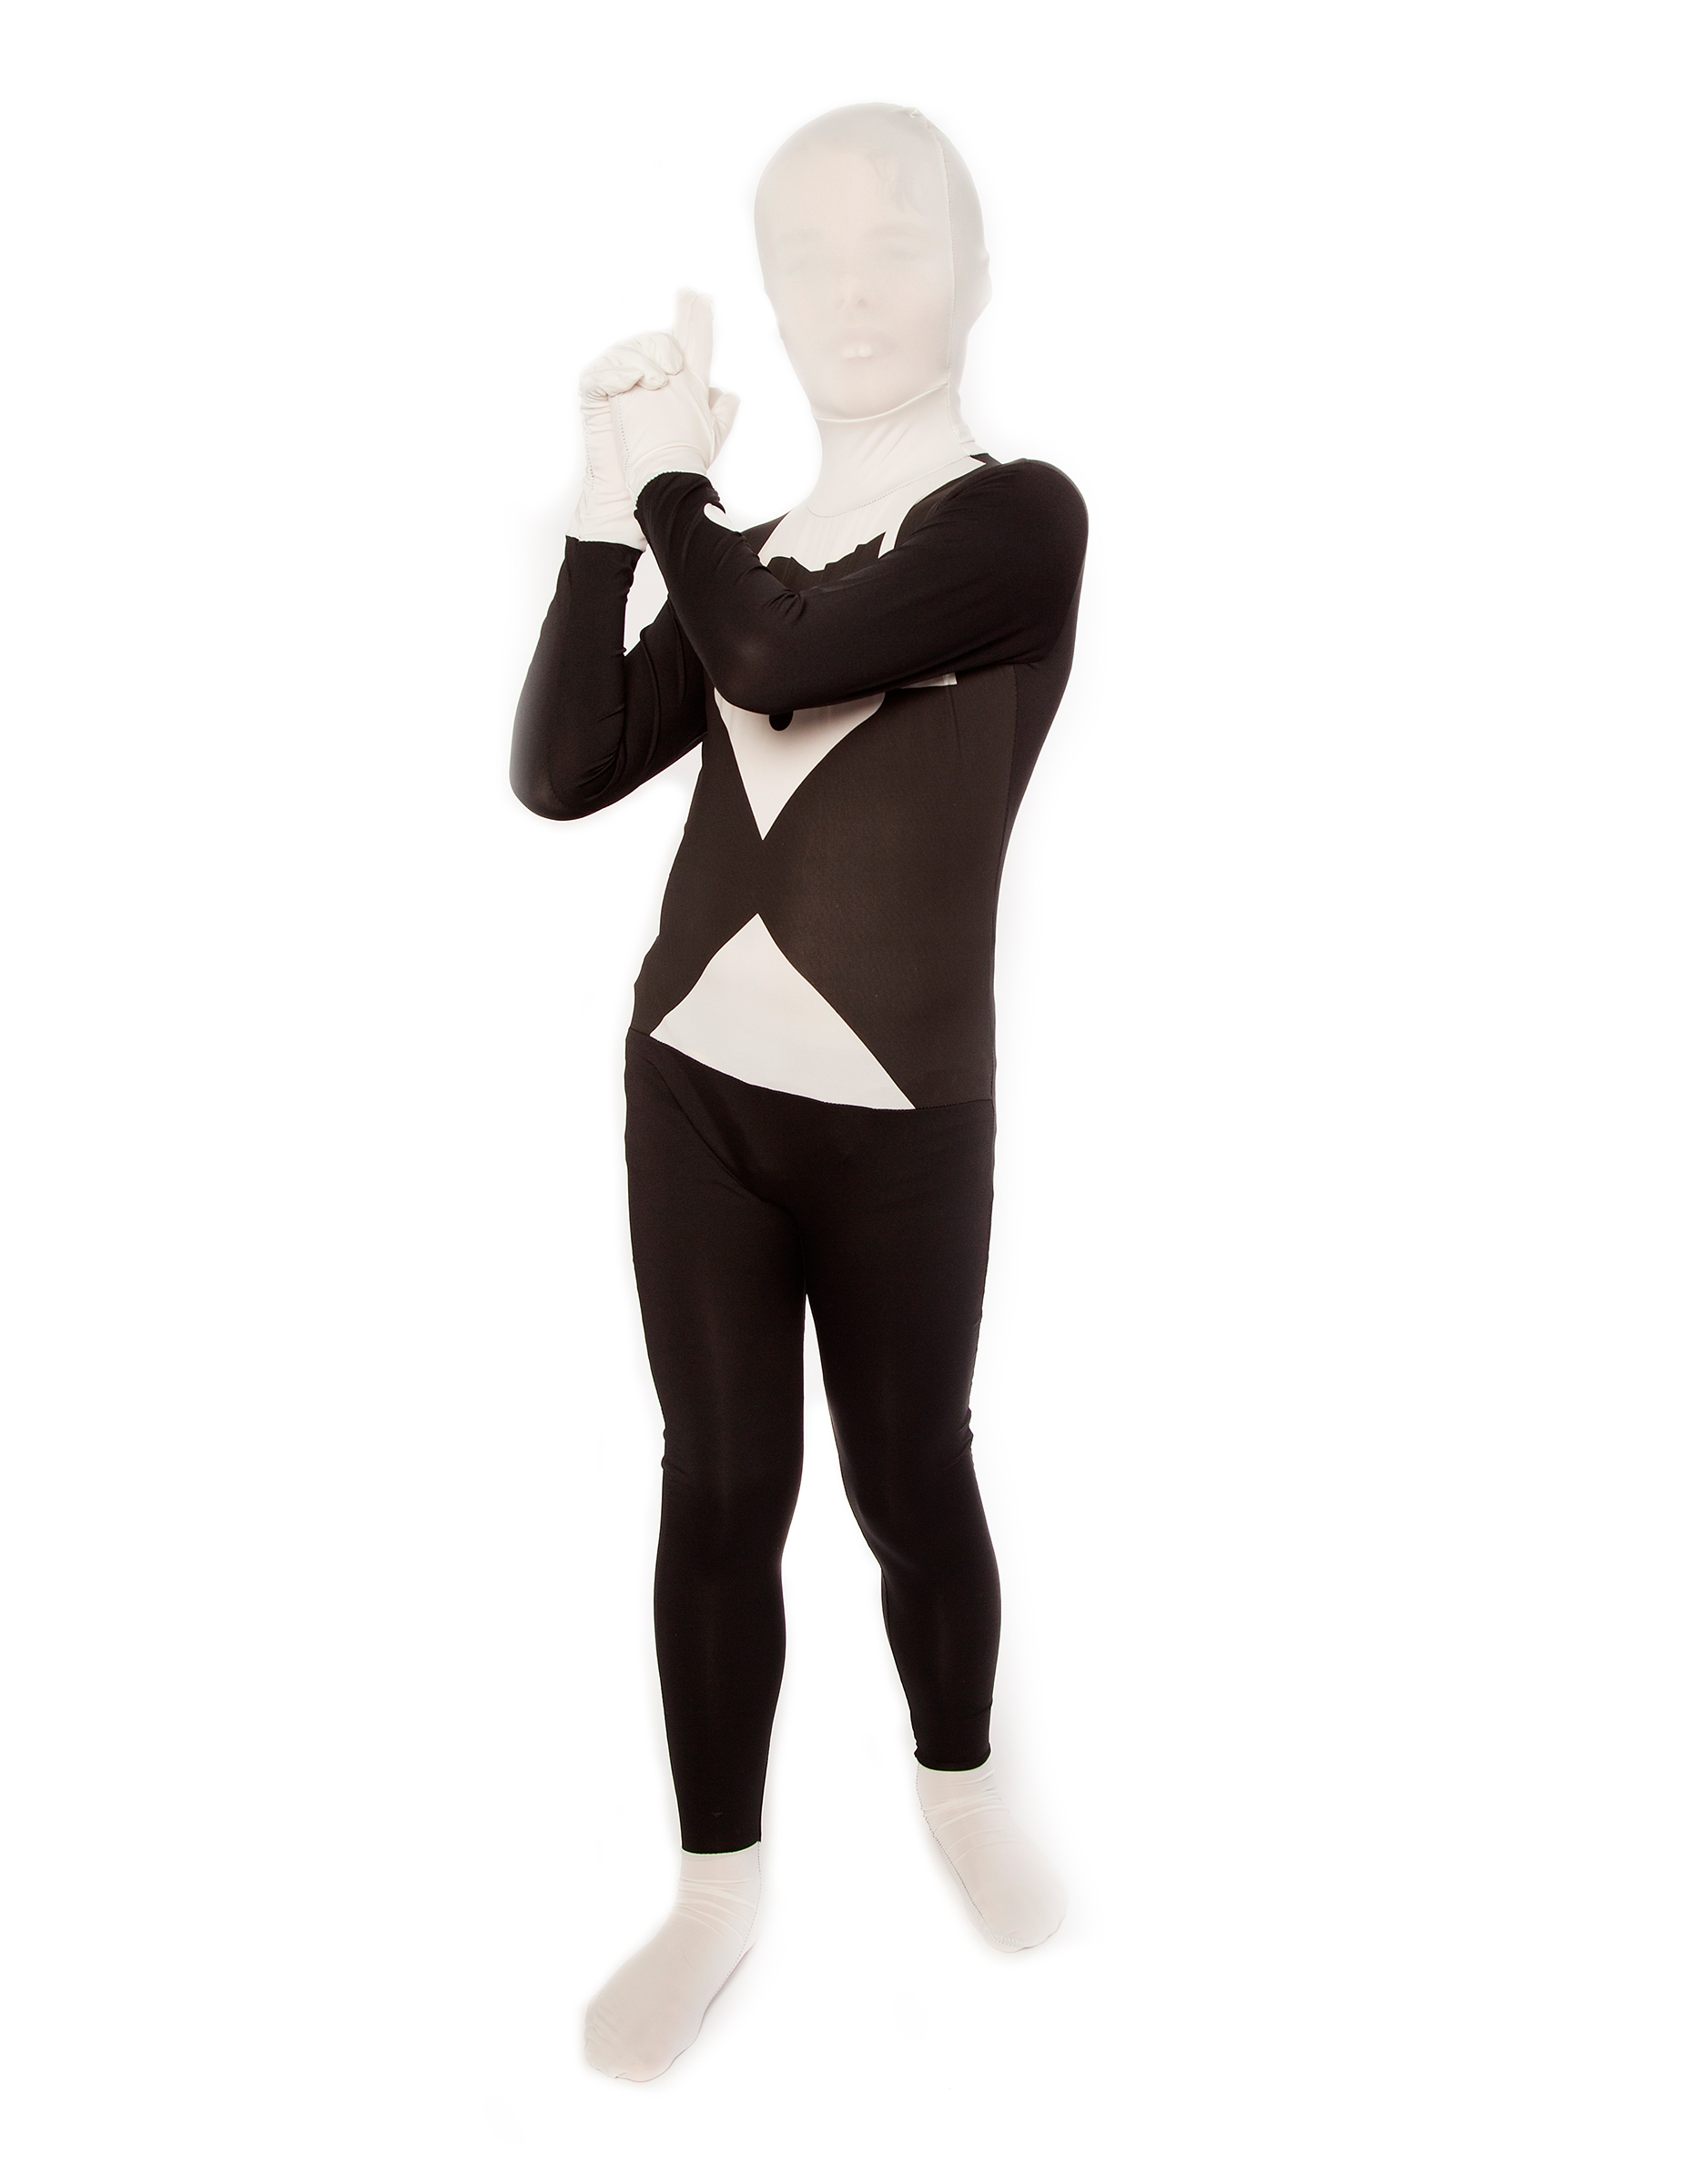 d guisement costume noir et blanc enfant morphsuits deguise toi achat de d guisements enfants. Black Bedroom Furniture Sets. Home Design Ideas